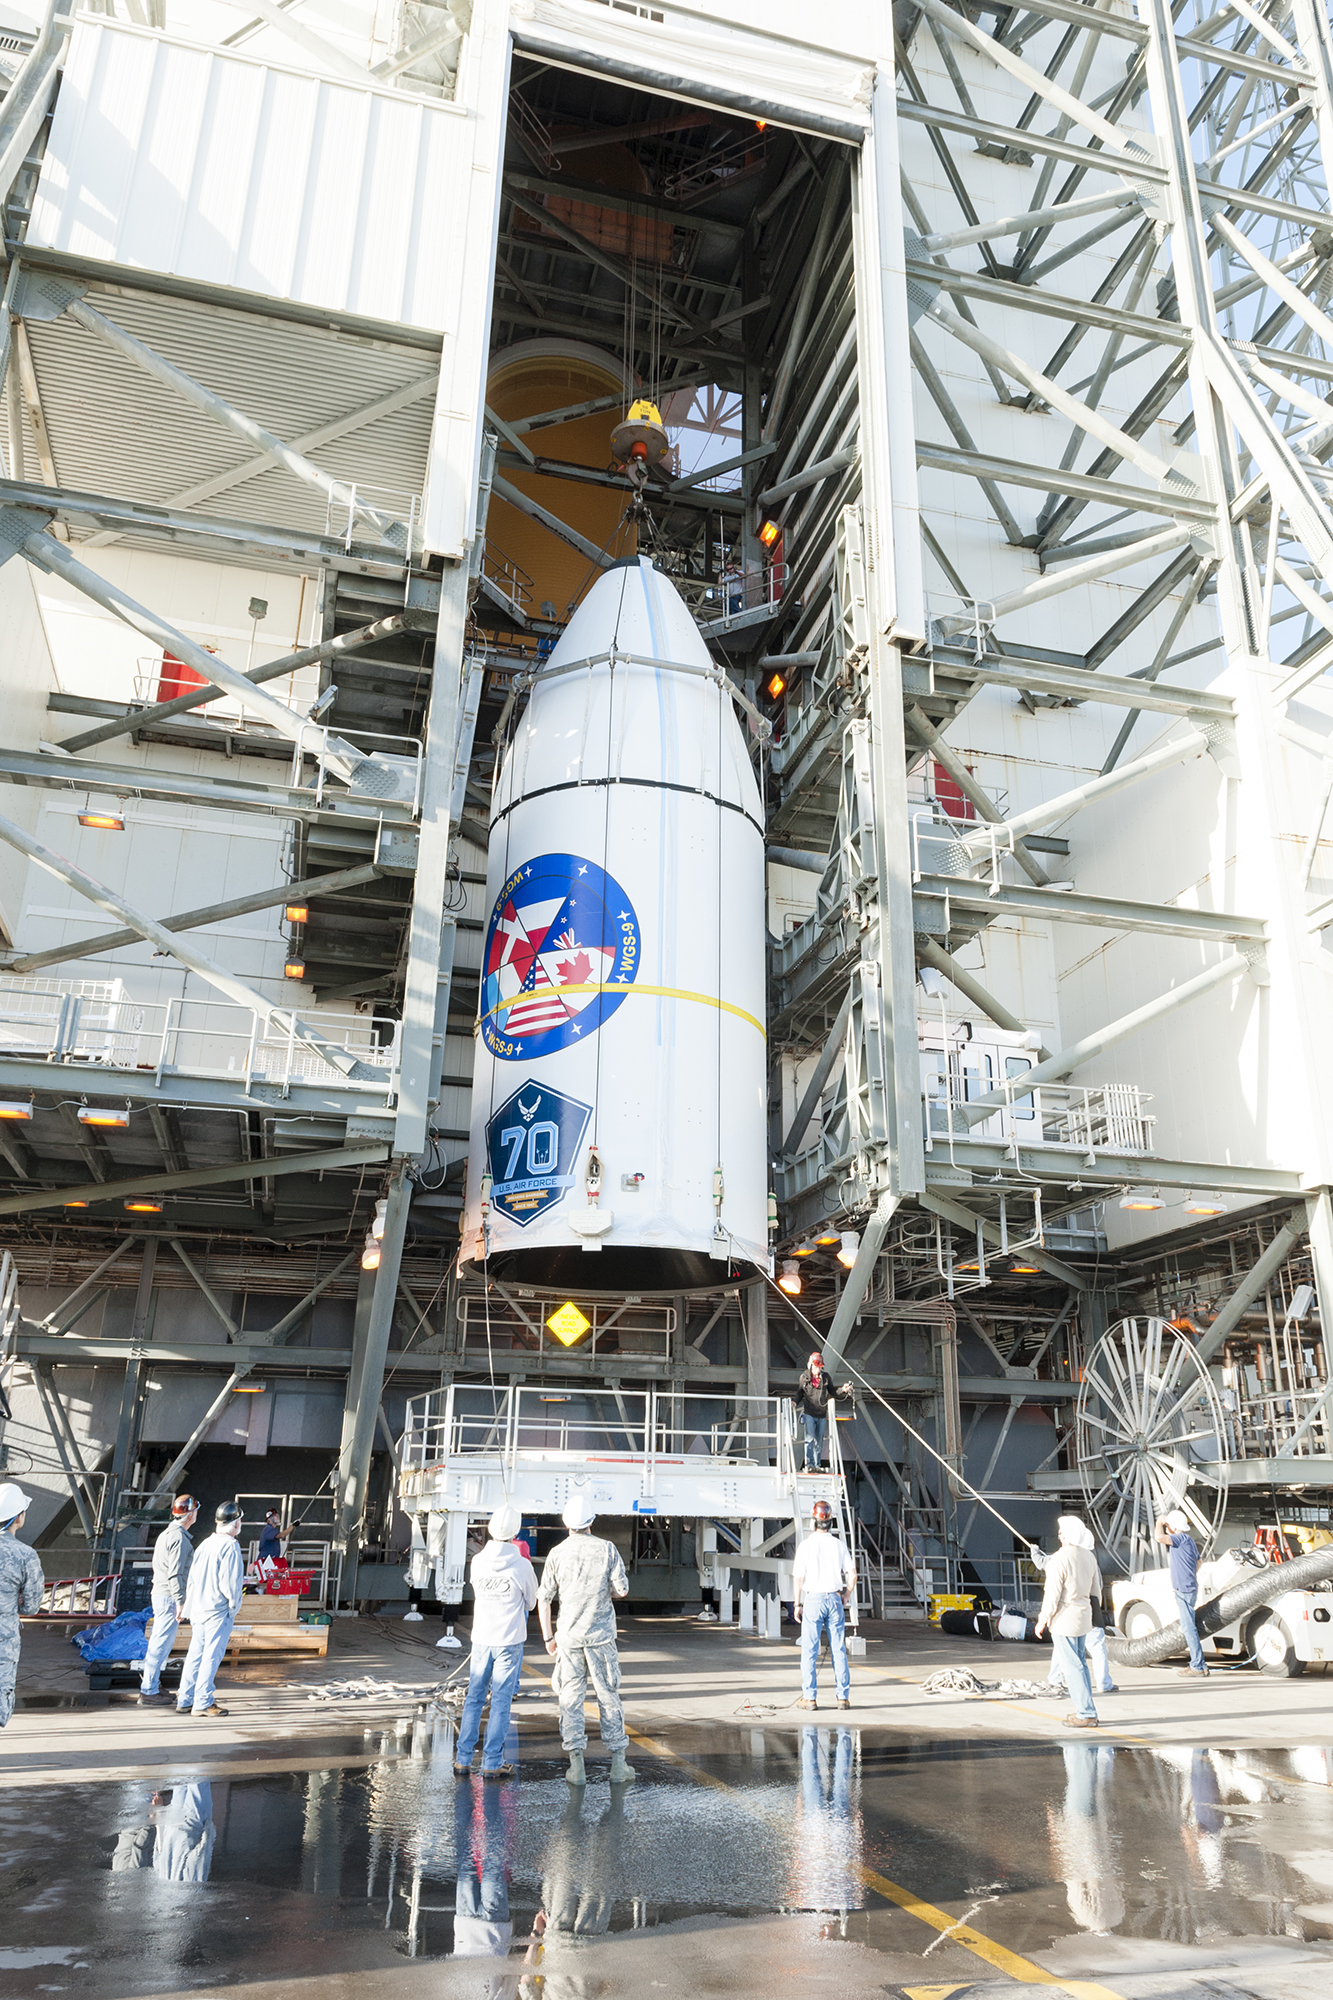 The ninth Wideband Global Satellite Communication (WGS-9) constellation satellite is lifted onto the Delta IV rocket at Cape Canaveral Air Force Station on February 2, 2017. PHOTO: © United Launch Alliance